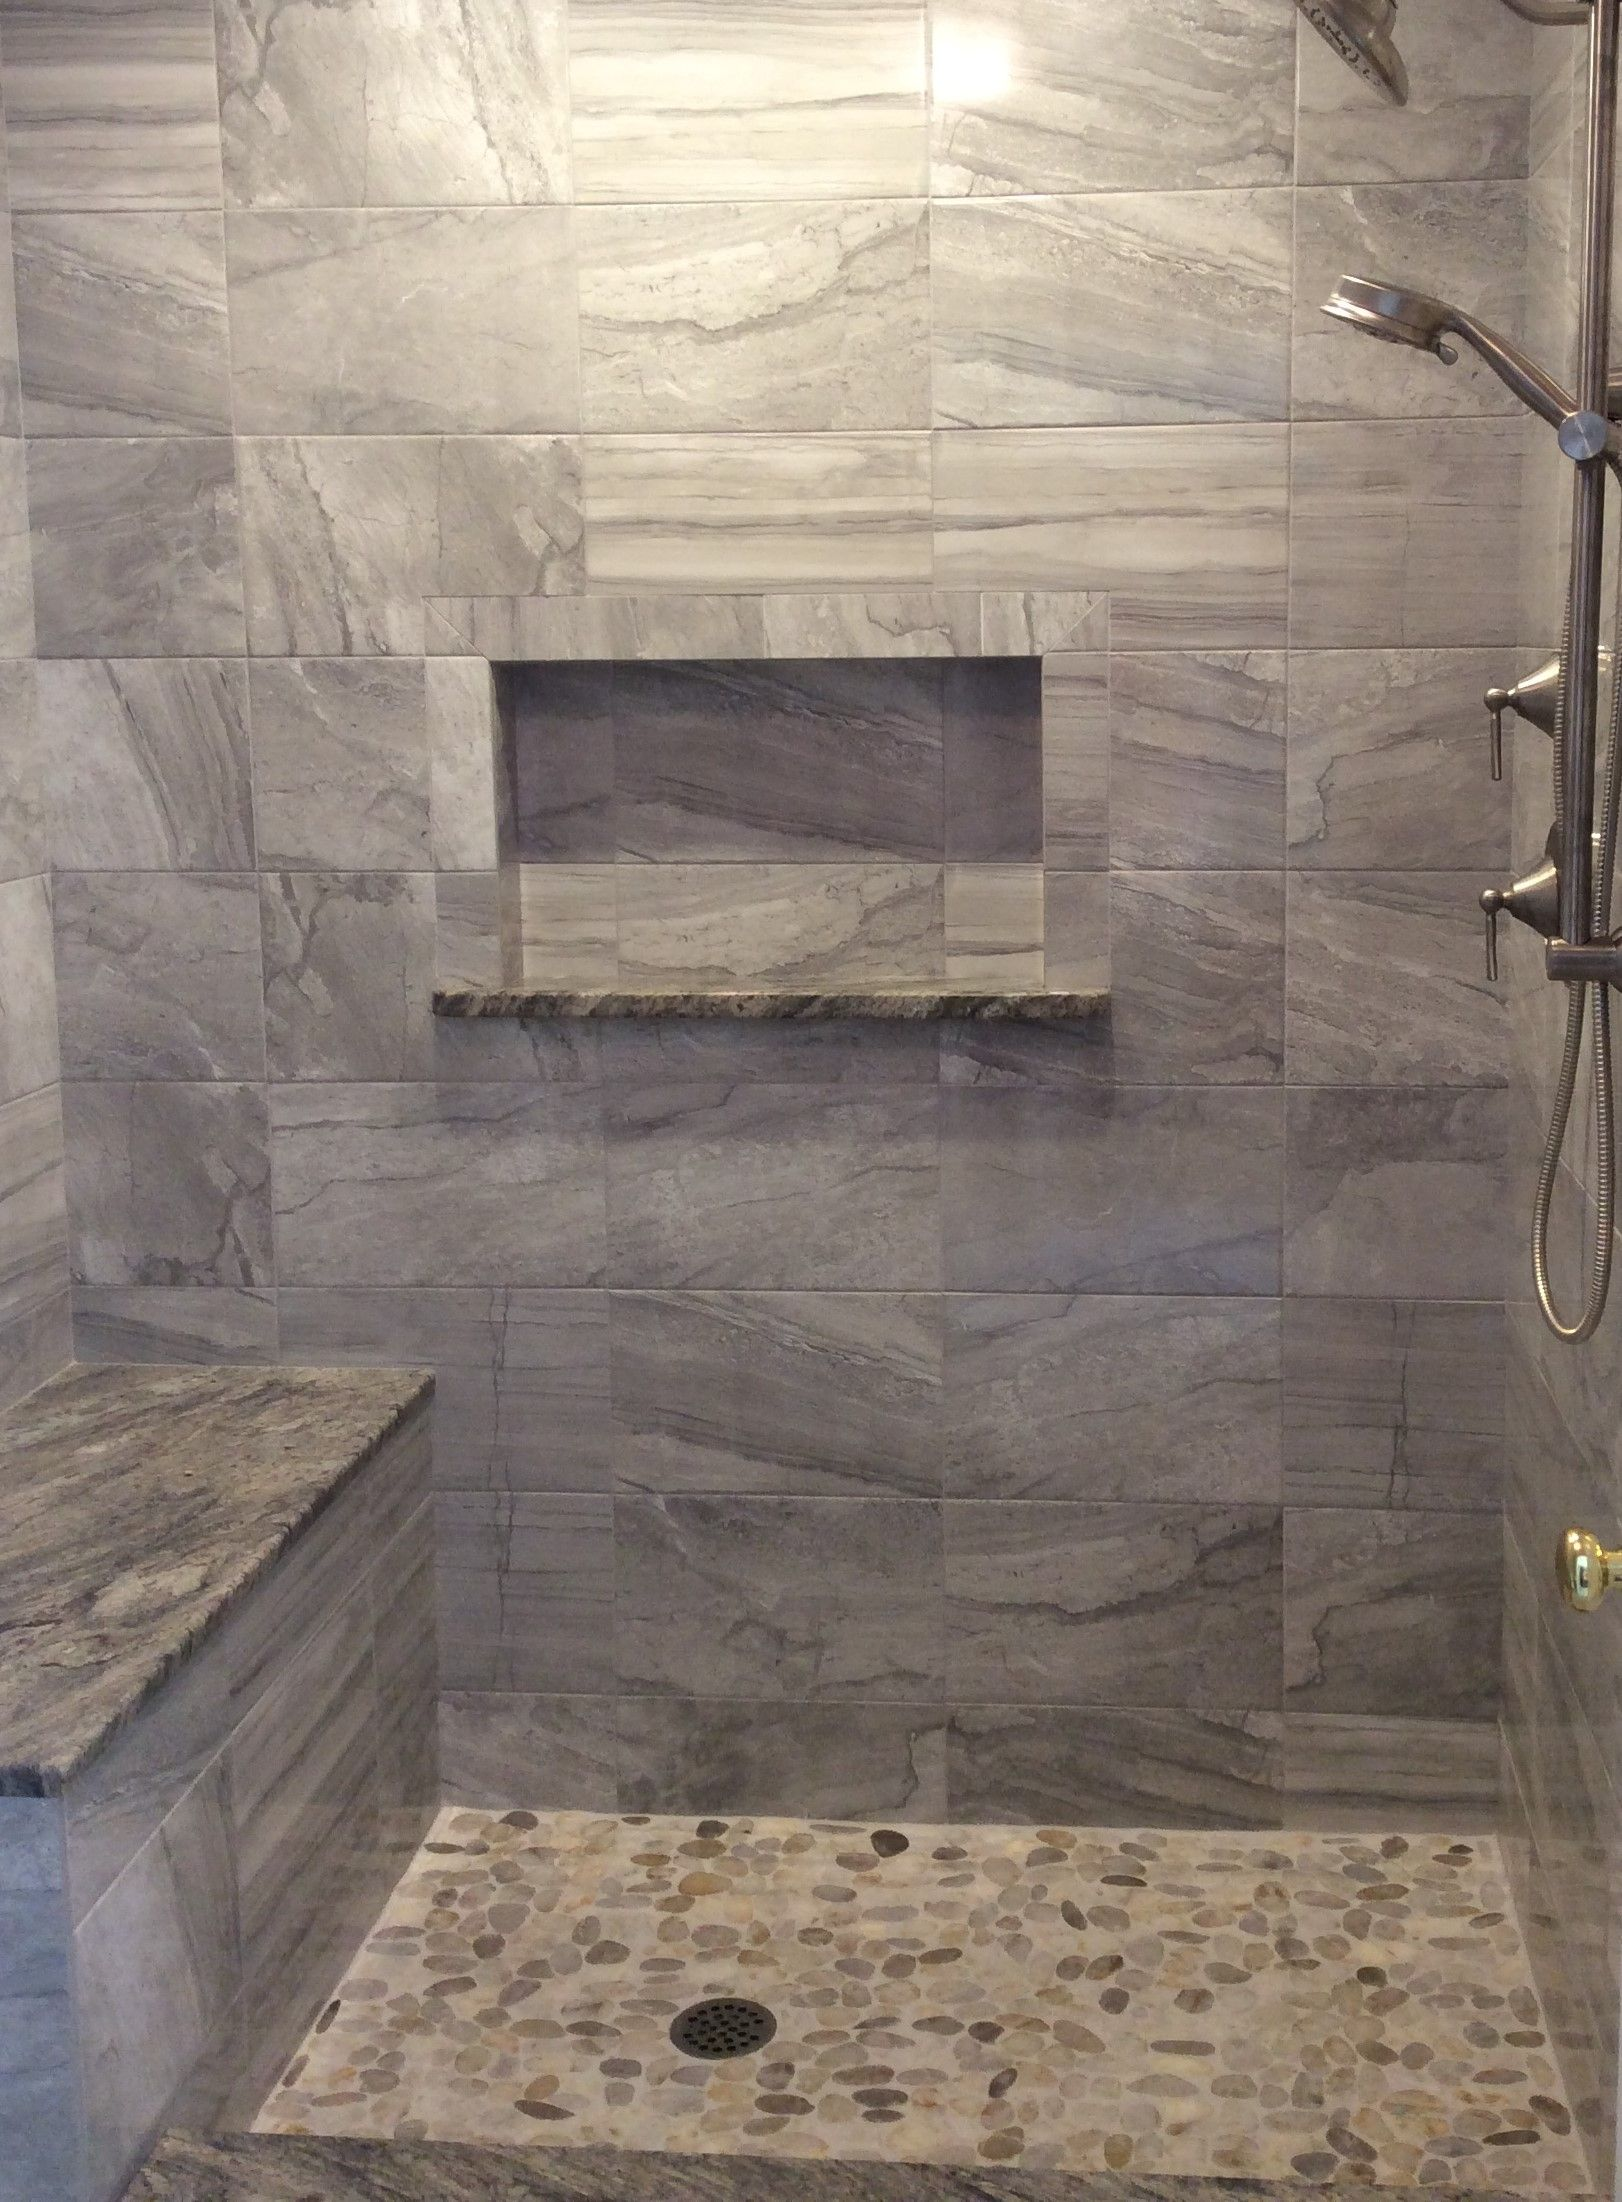 Pebble rock shower floor and tile in greys and beige 12x24 give pebble rock shower floor and tile in greys and beige 12x24 give this shower a relaxing dailygadgetfo Choice Image